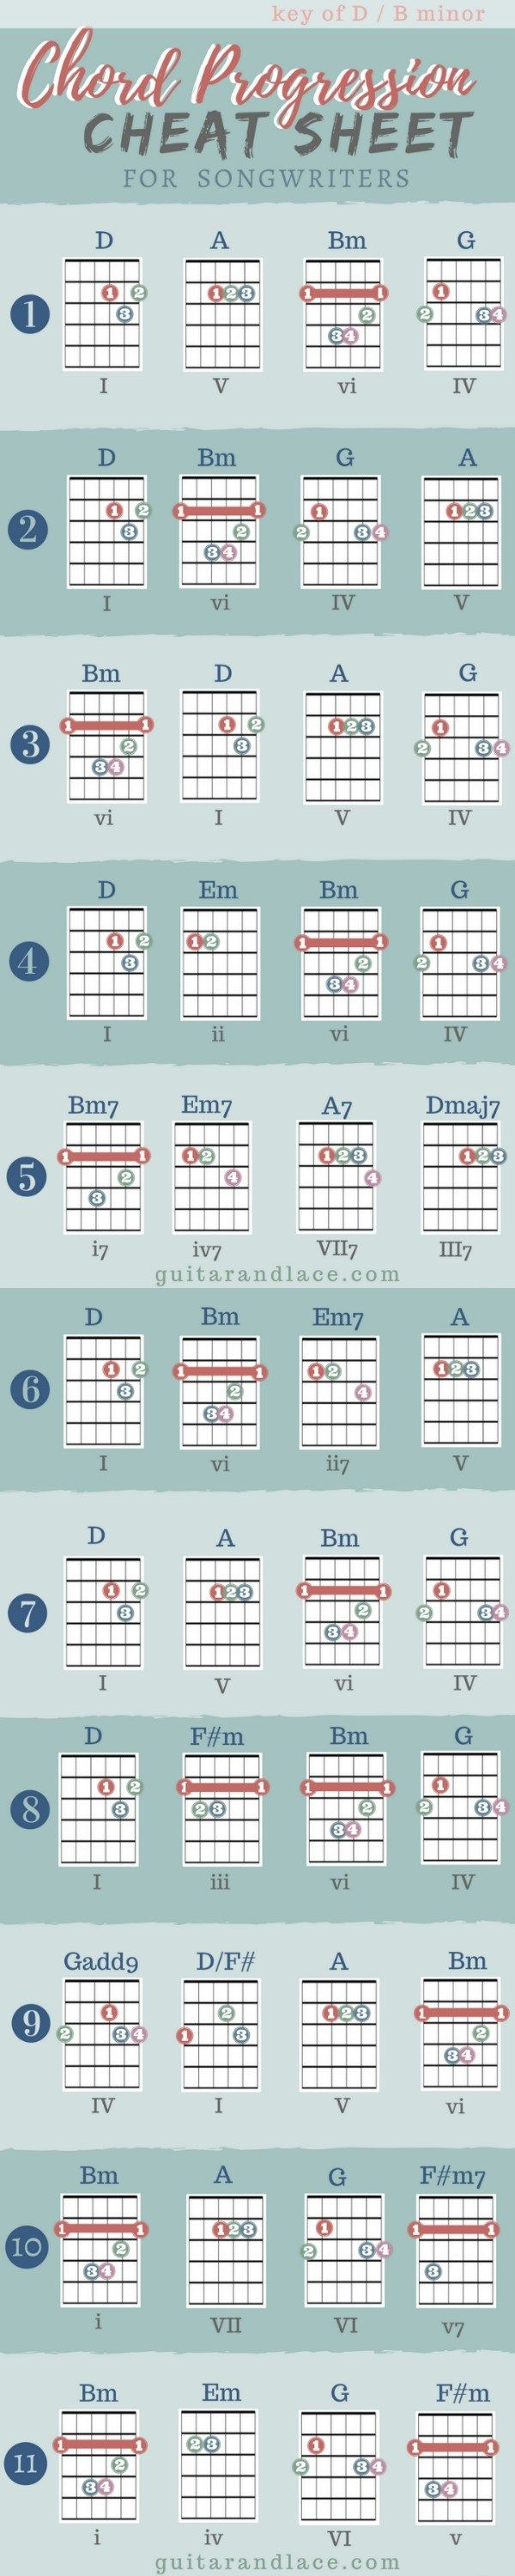 Free songwriting cheat sheets! Guitar chord progressions, guitar tips, lyric tips, printables!